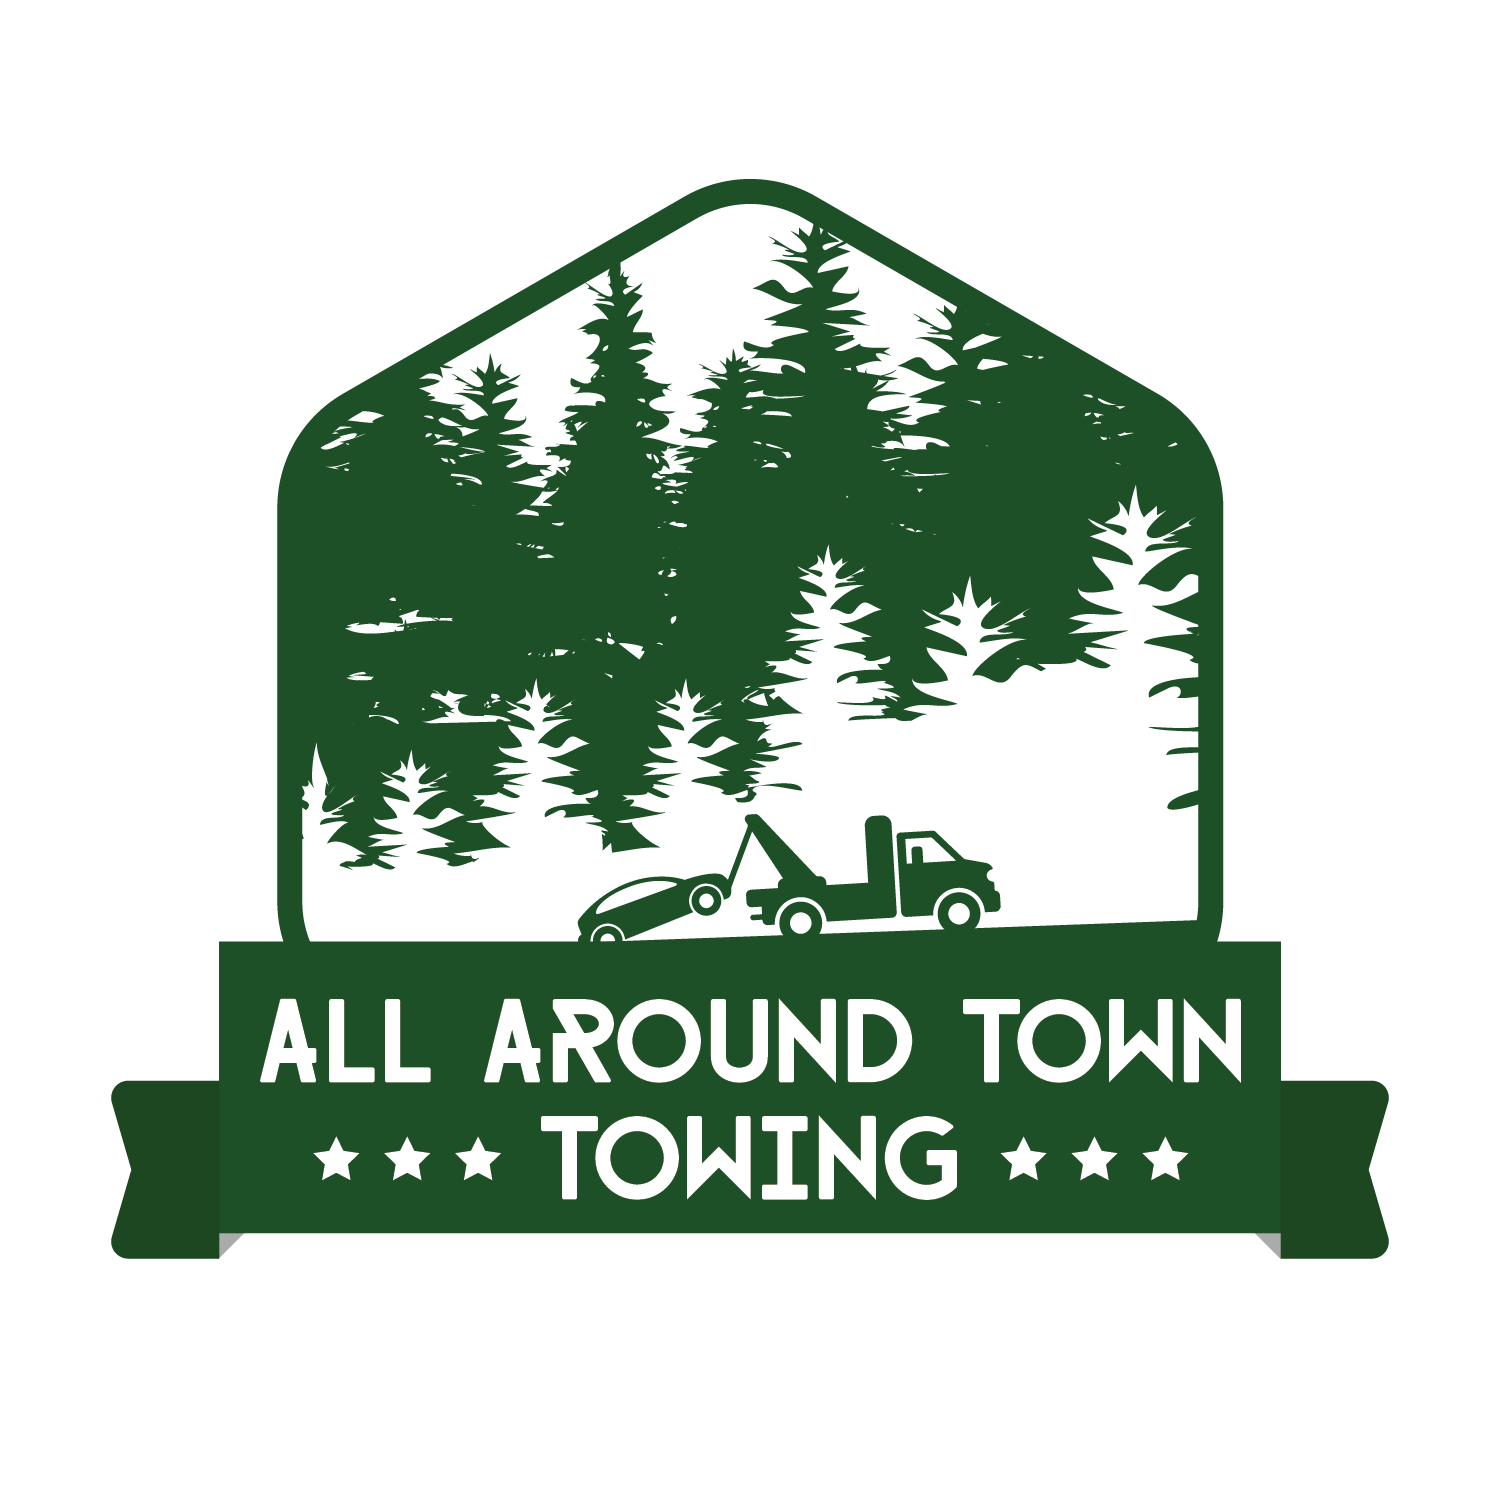 All Around Town Towing